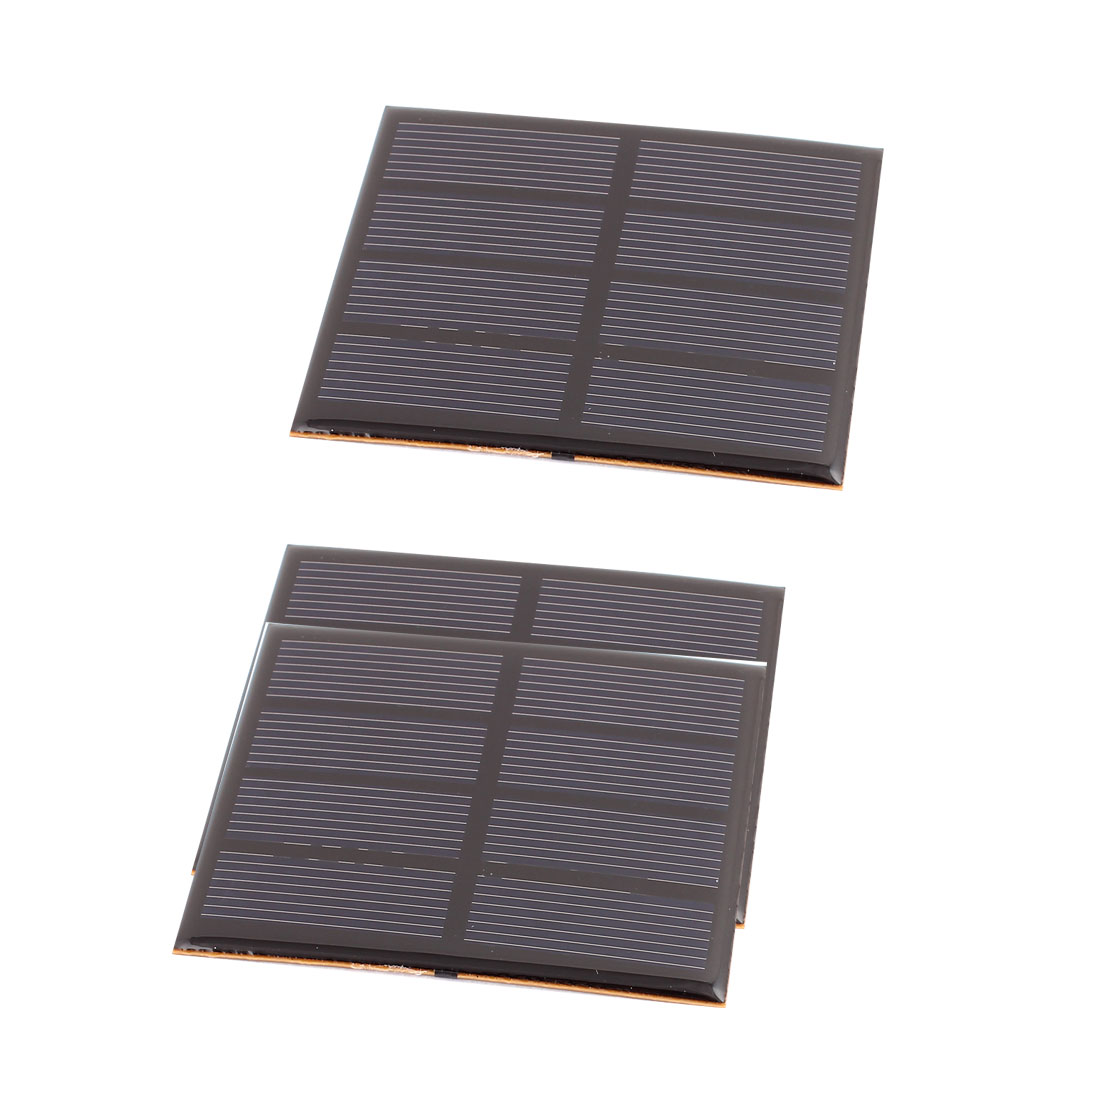 3 Pcs 2V 0.6W DIY Polycrystallinesilicon Solar Panel Power Cell Battery Charger 82mm x 70mm